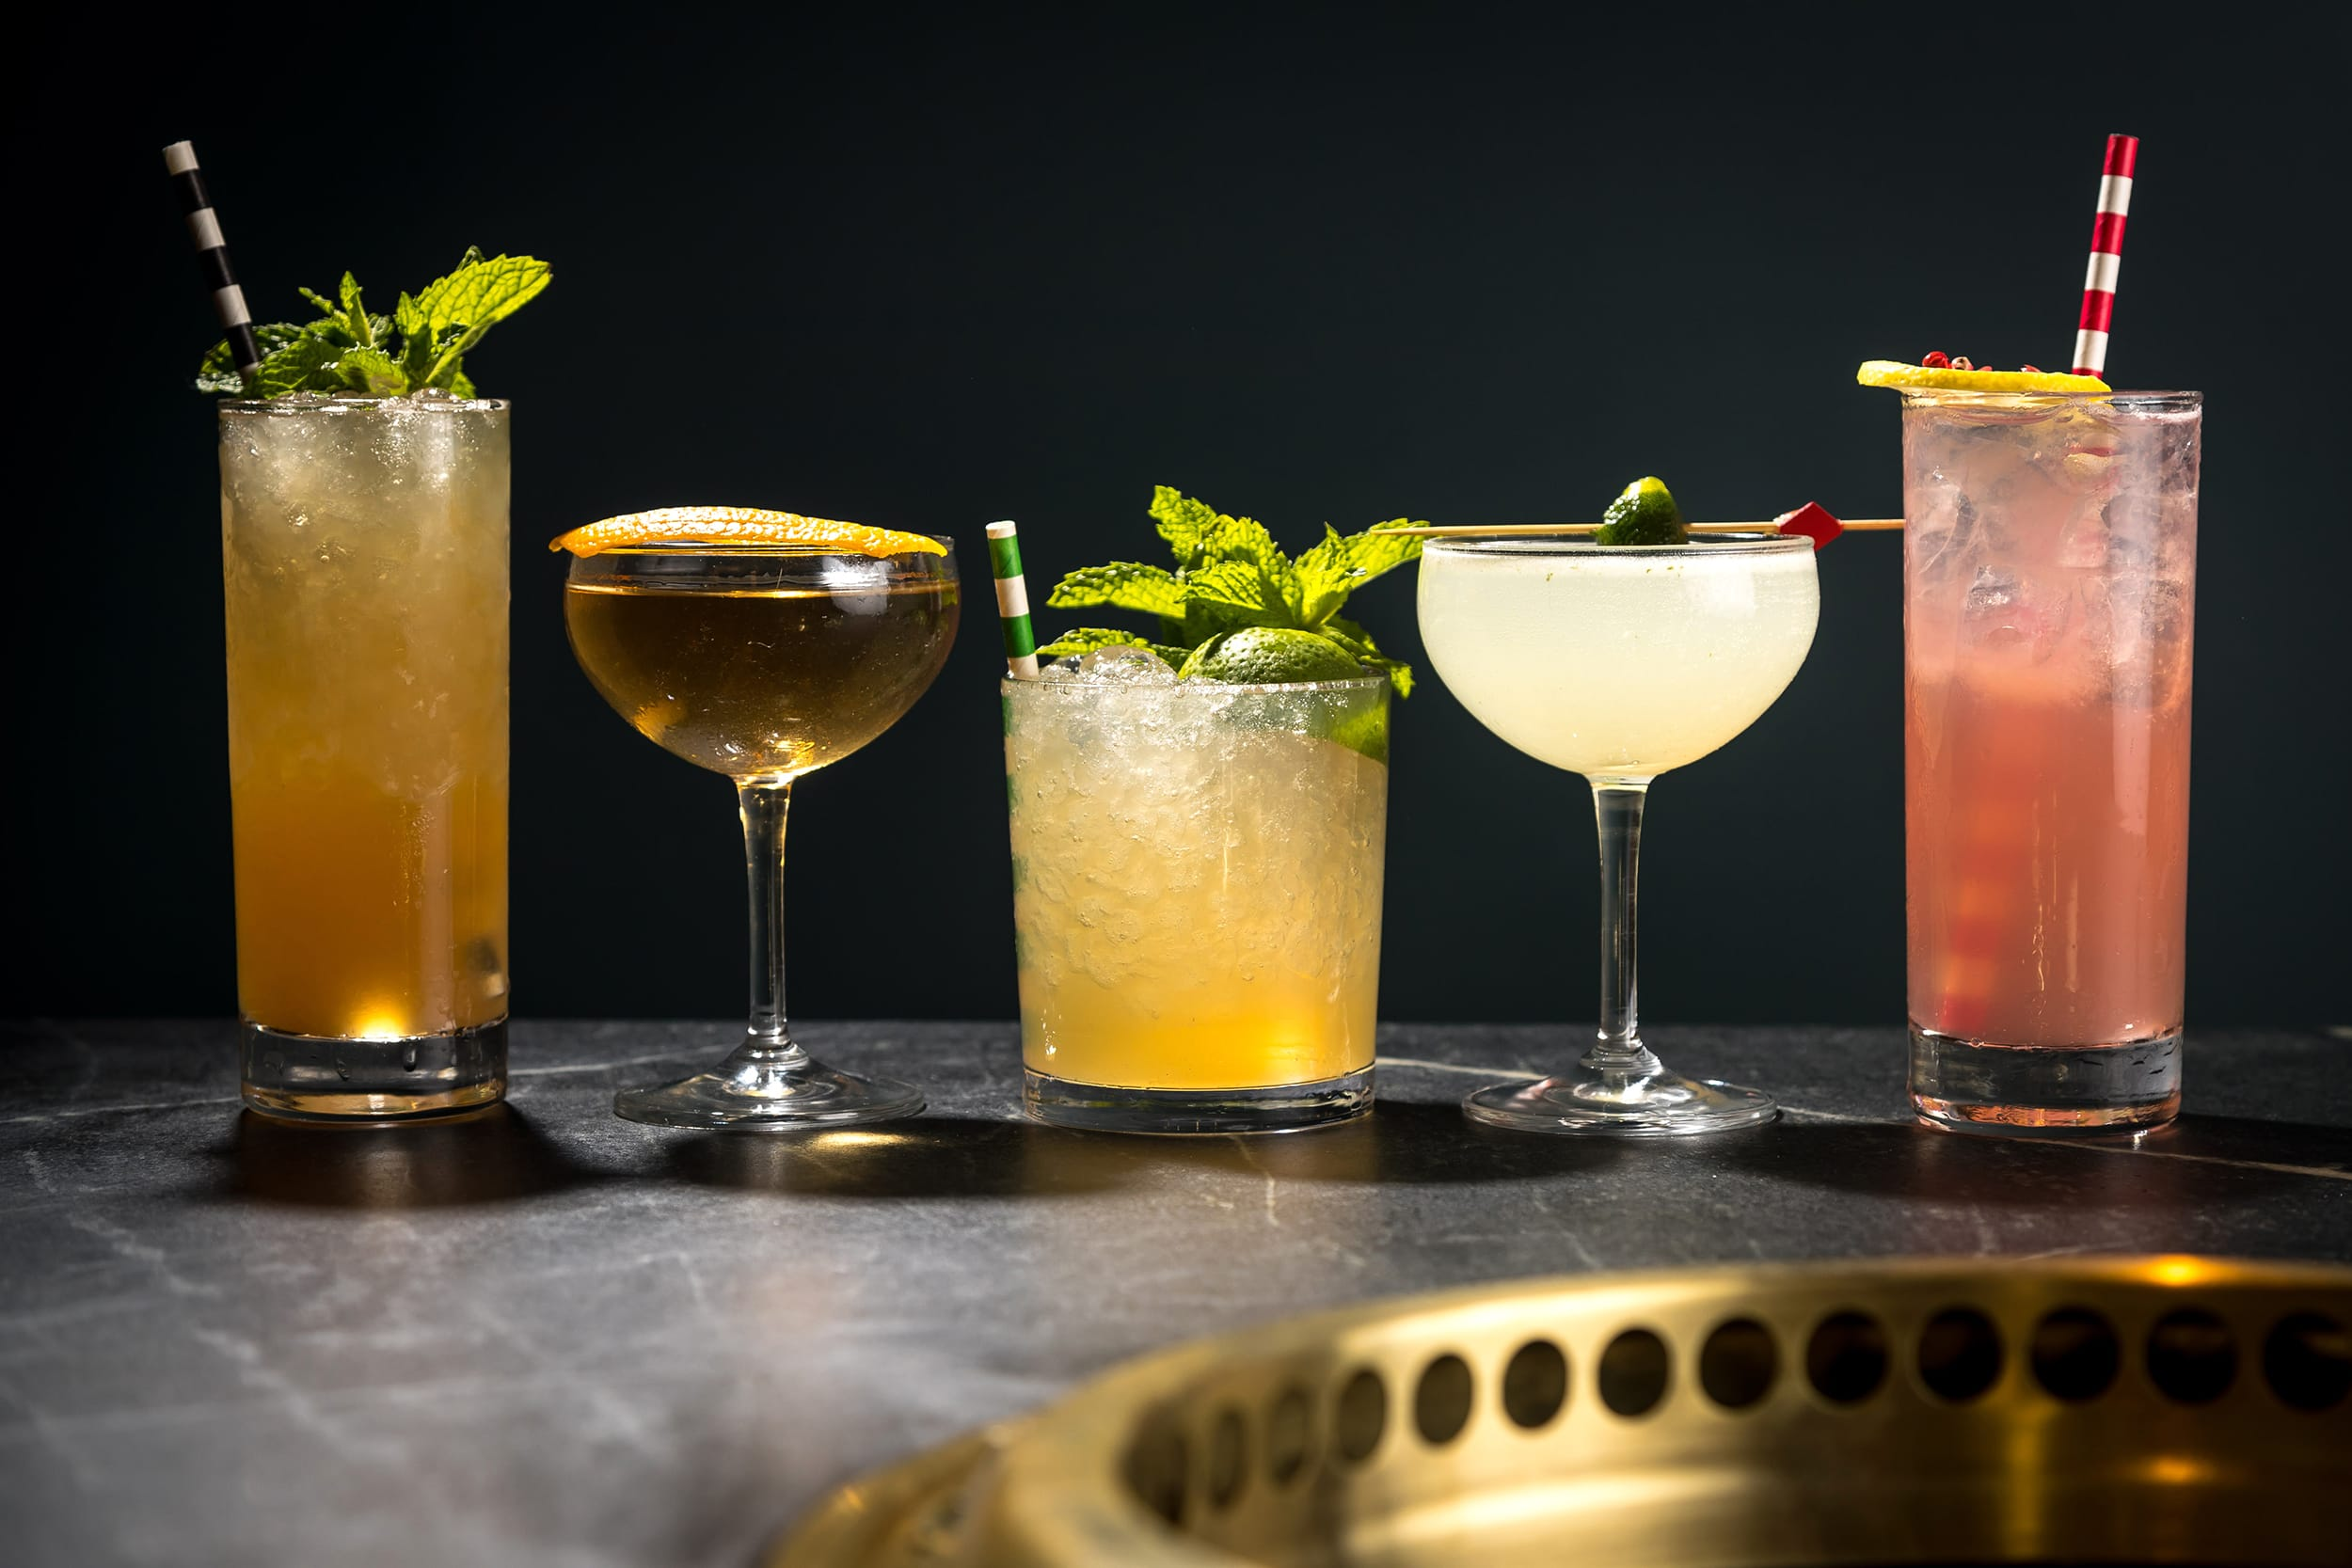 Five unique cocktails on a table